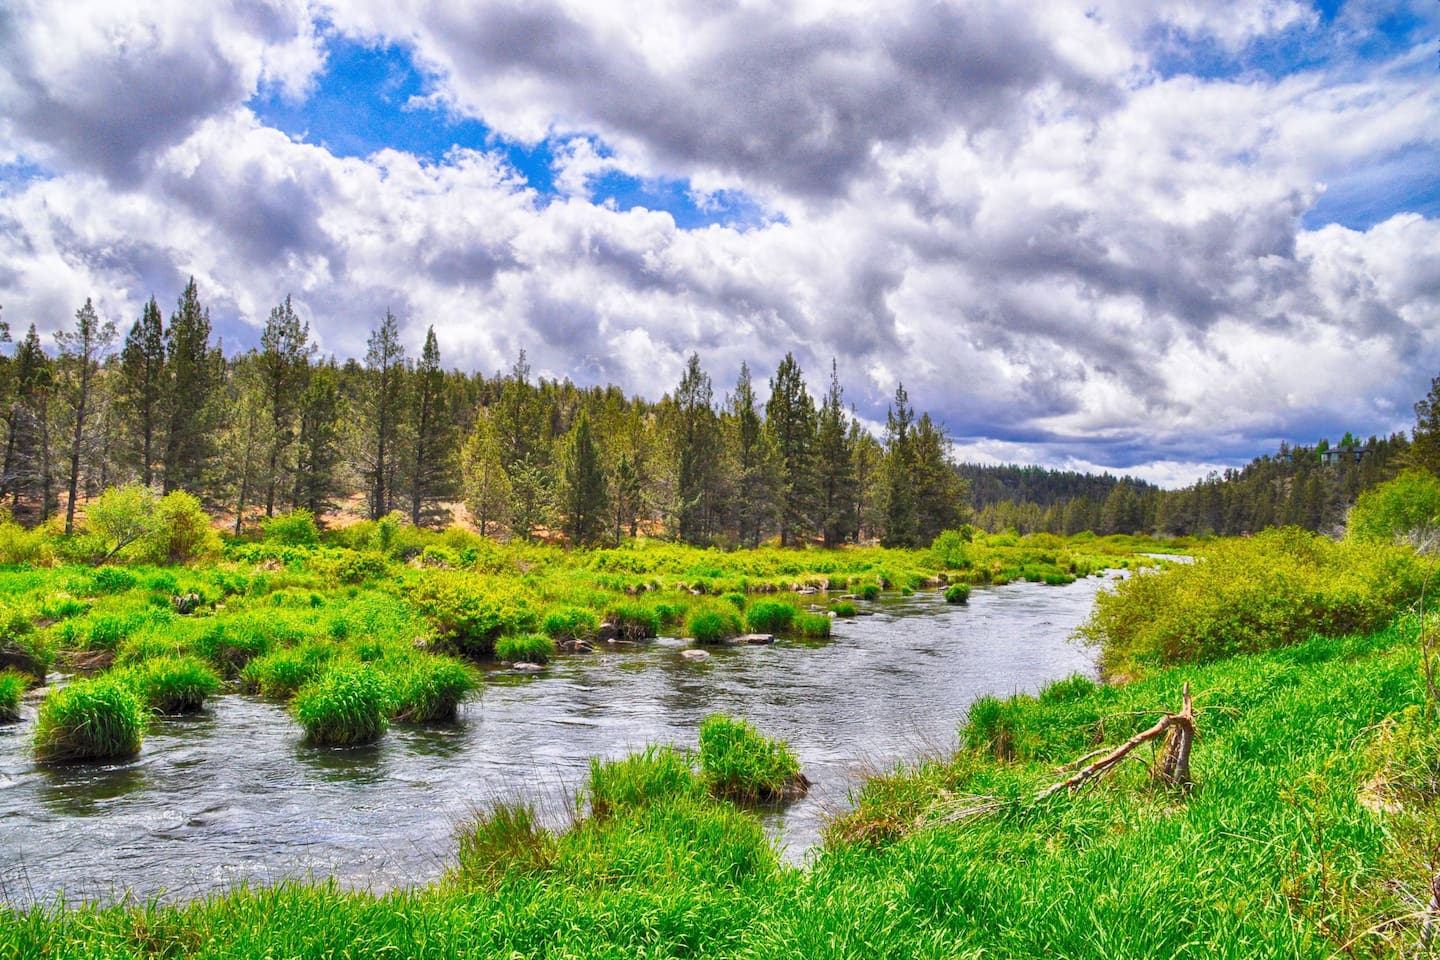 Hiking trail along the Deschutes River in the resort